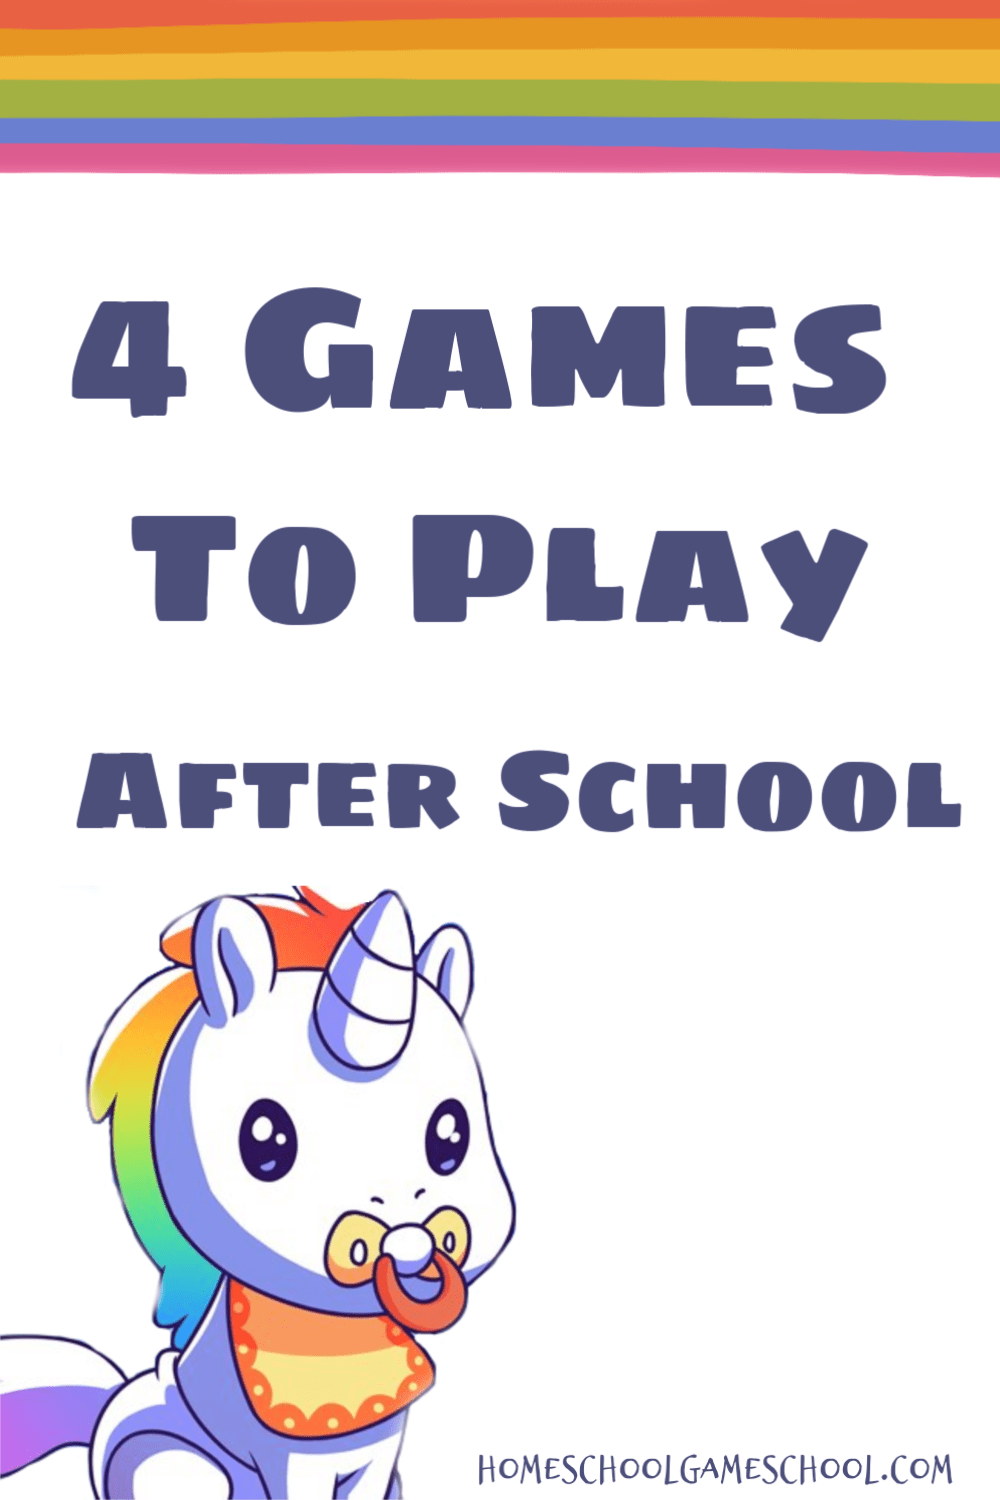 4 Games to Play After School